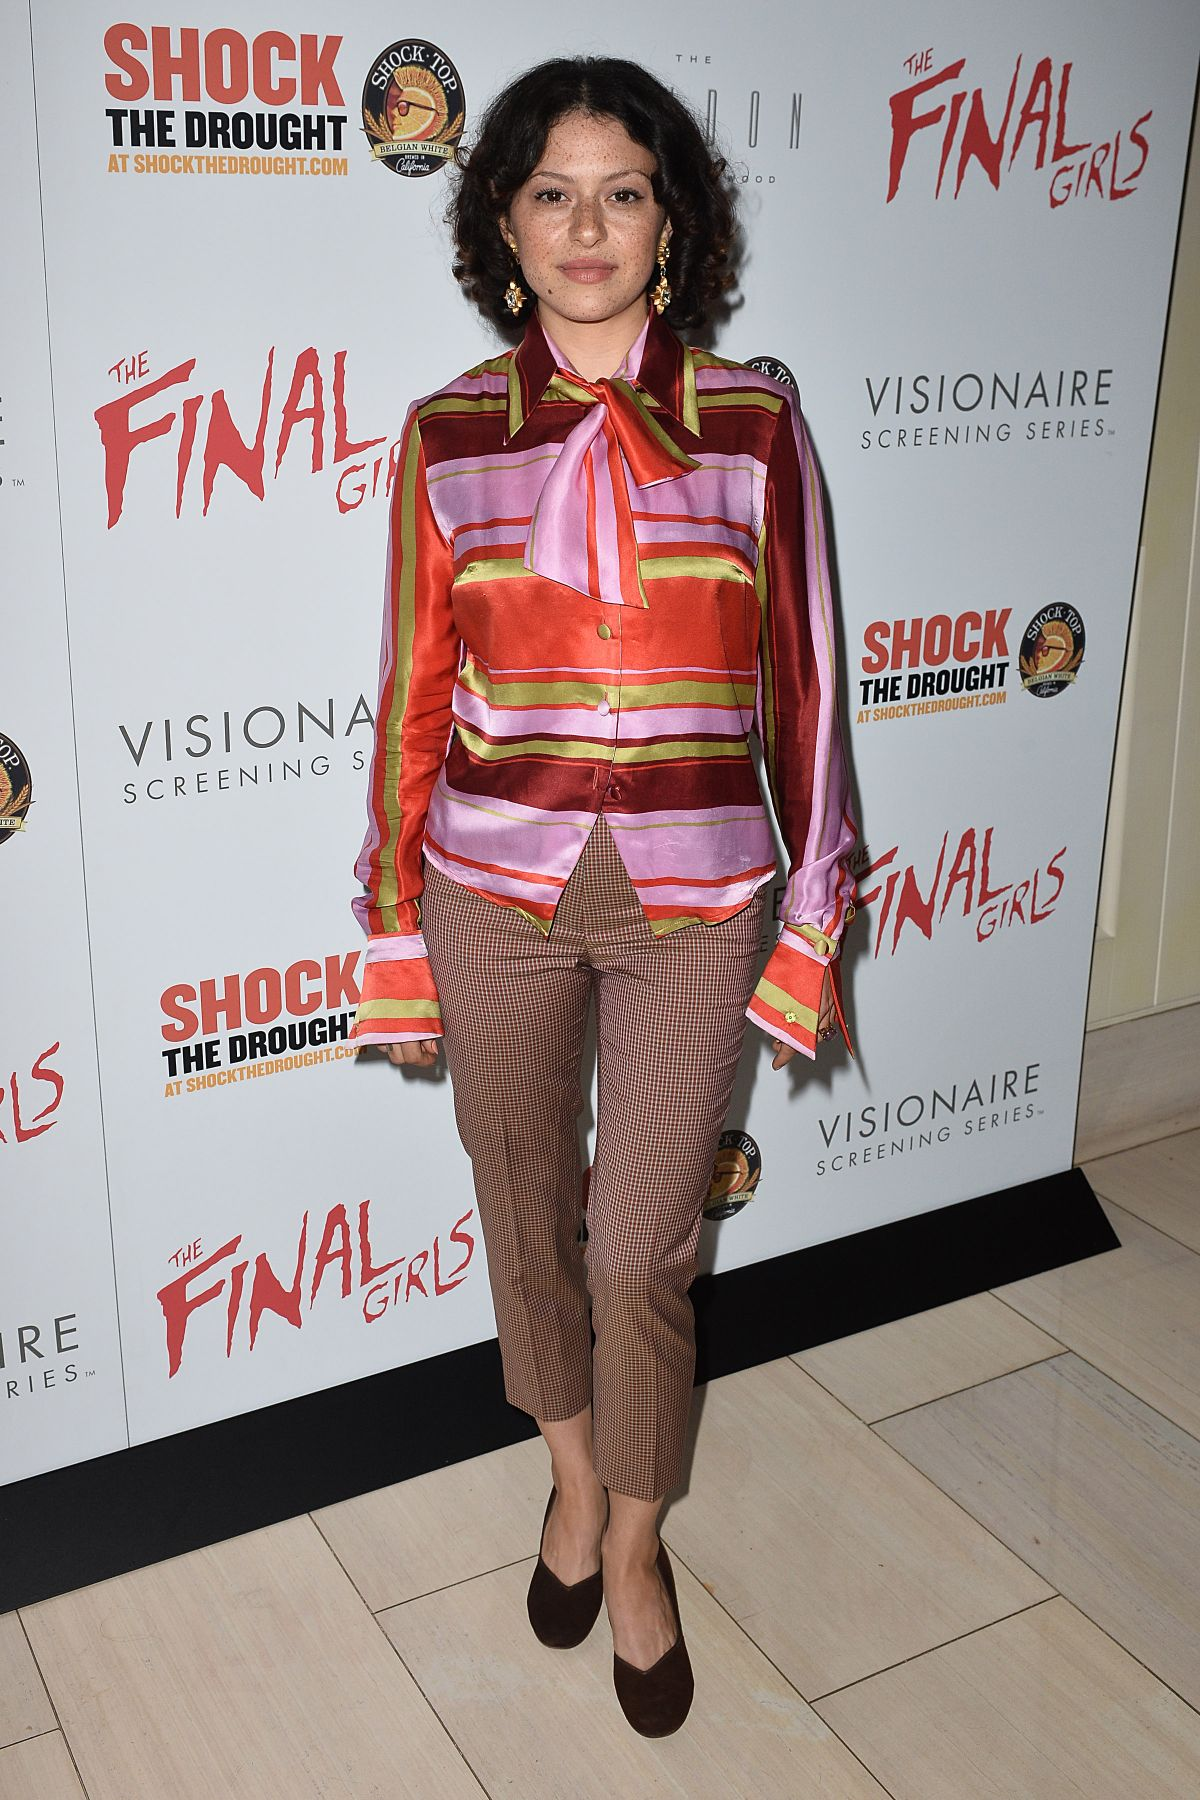 ALIA SHAWKAT at The Final Girls Screening in Los Angeles 10/06/2015